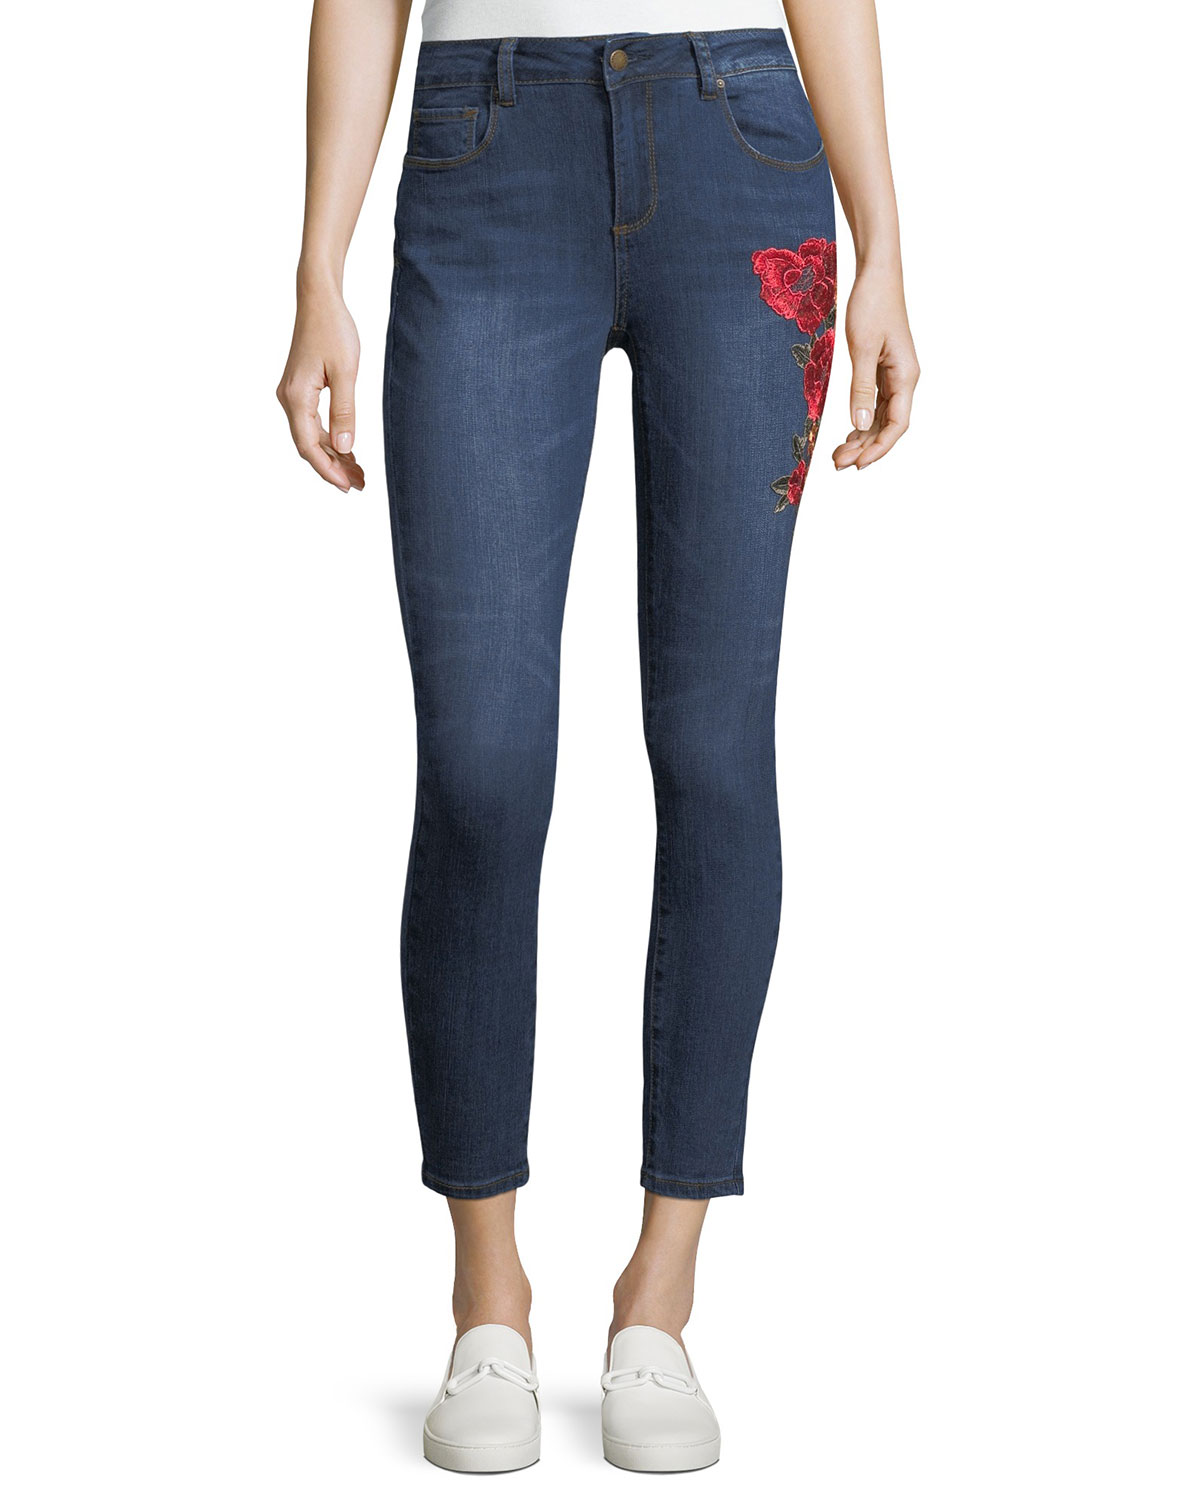 Elsie Embroidered Skinny Jeans